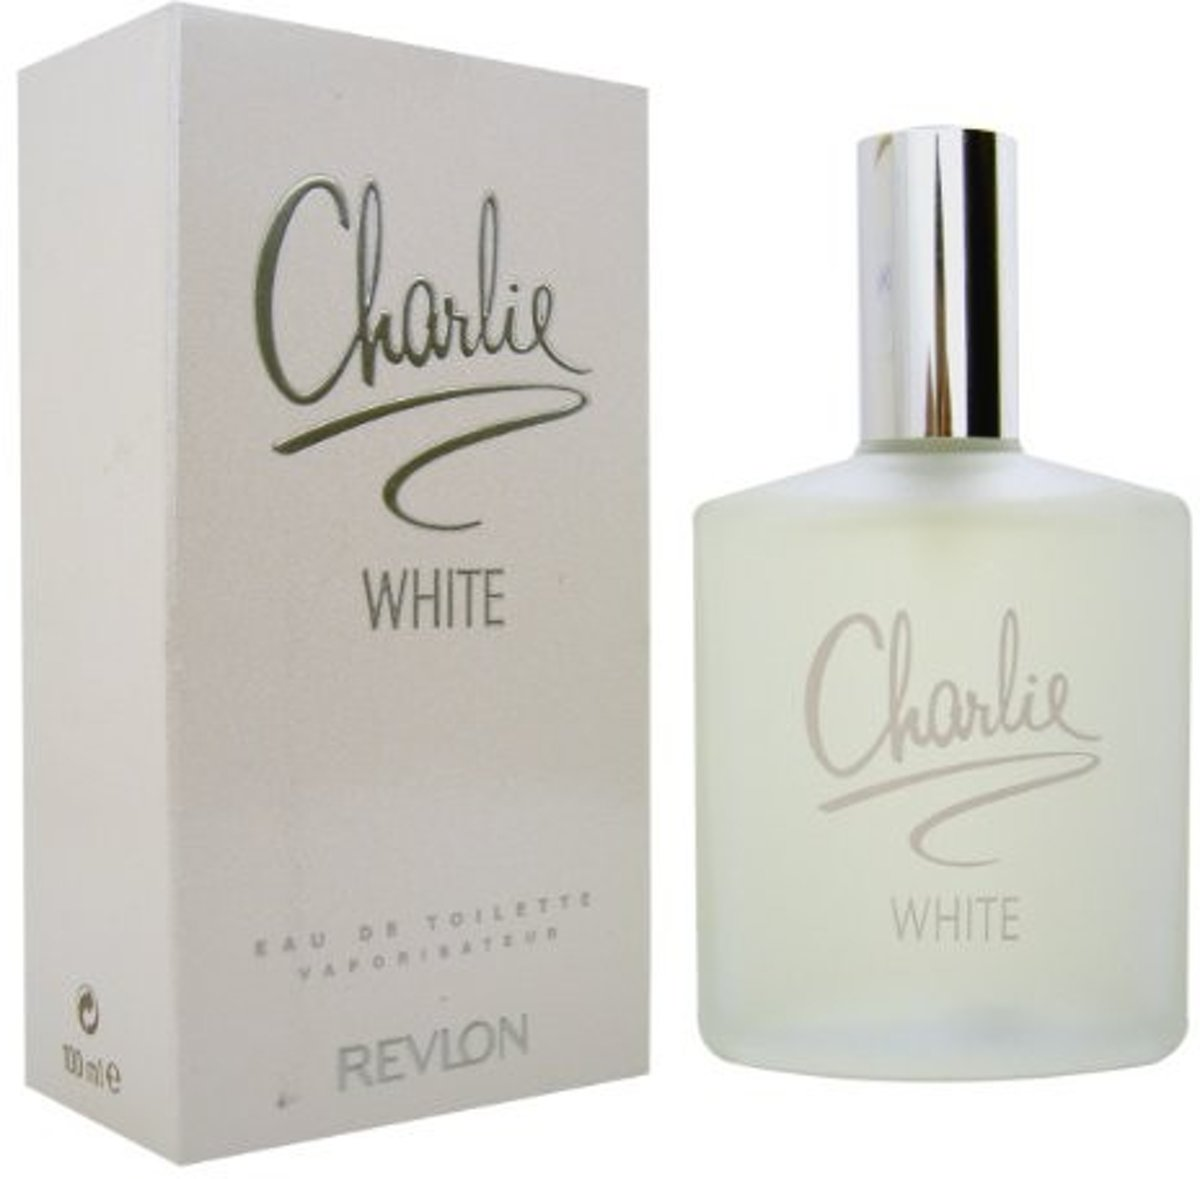 MULTI BUNDEL 2 stuks Revlon Charlie White Eau De Toilette Spray 100ml